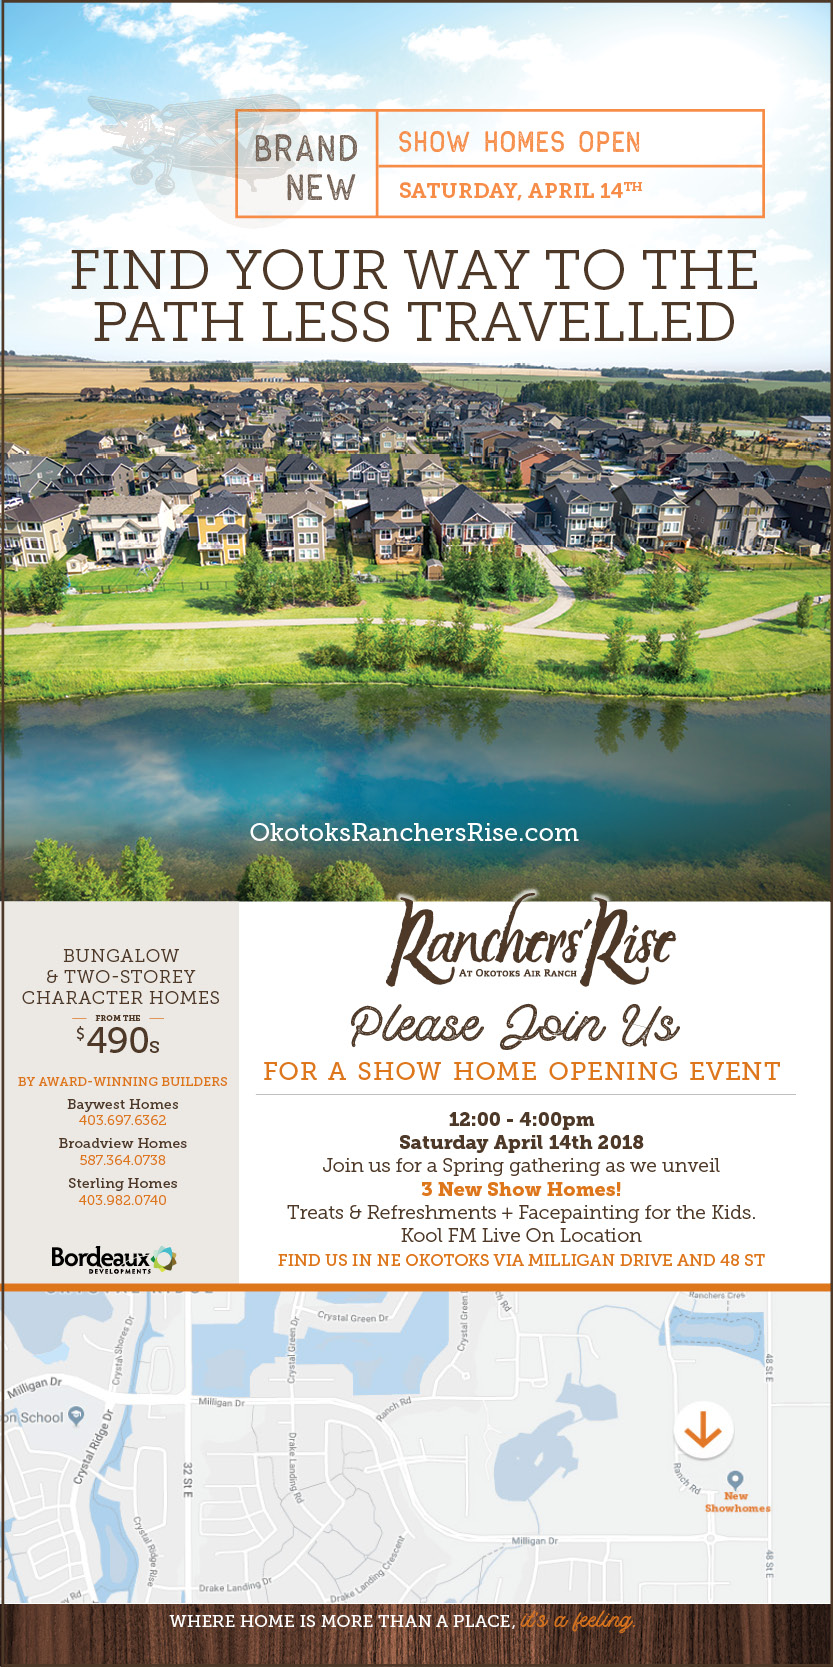 Please Join us for a Show Home Opening Event- Saturday April 14, 2018. Noon to 4:00 OM